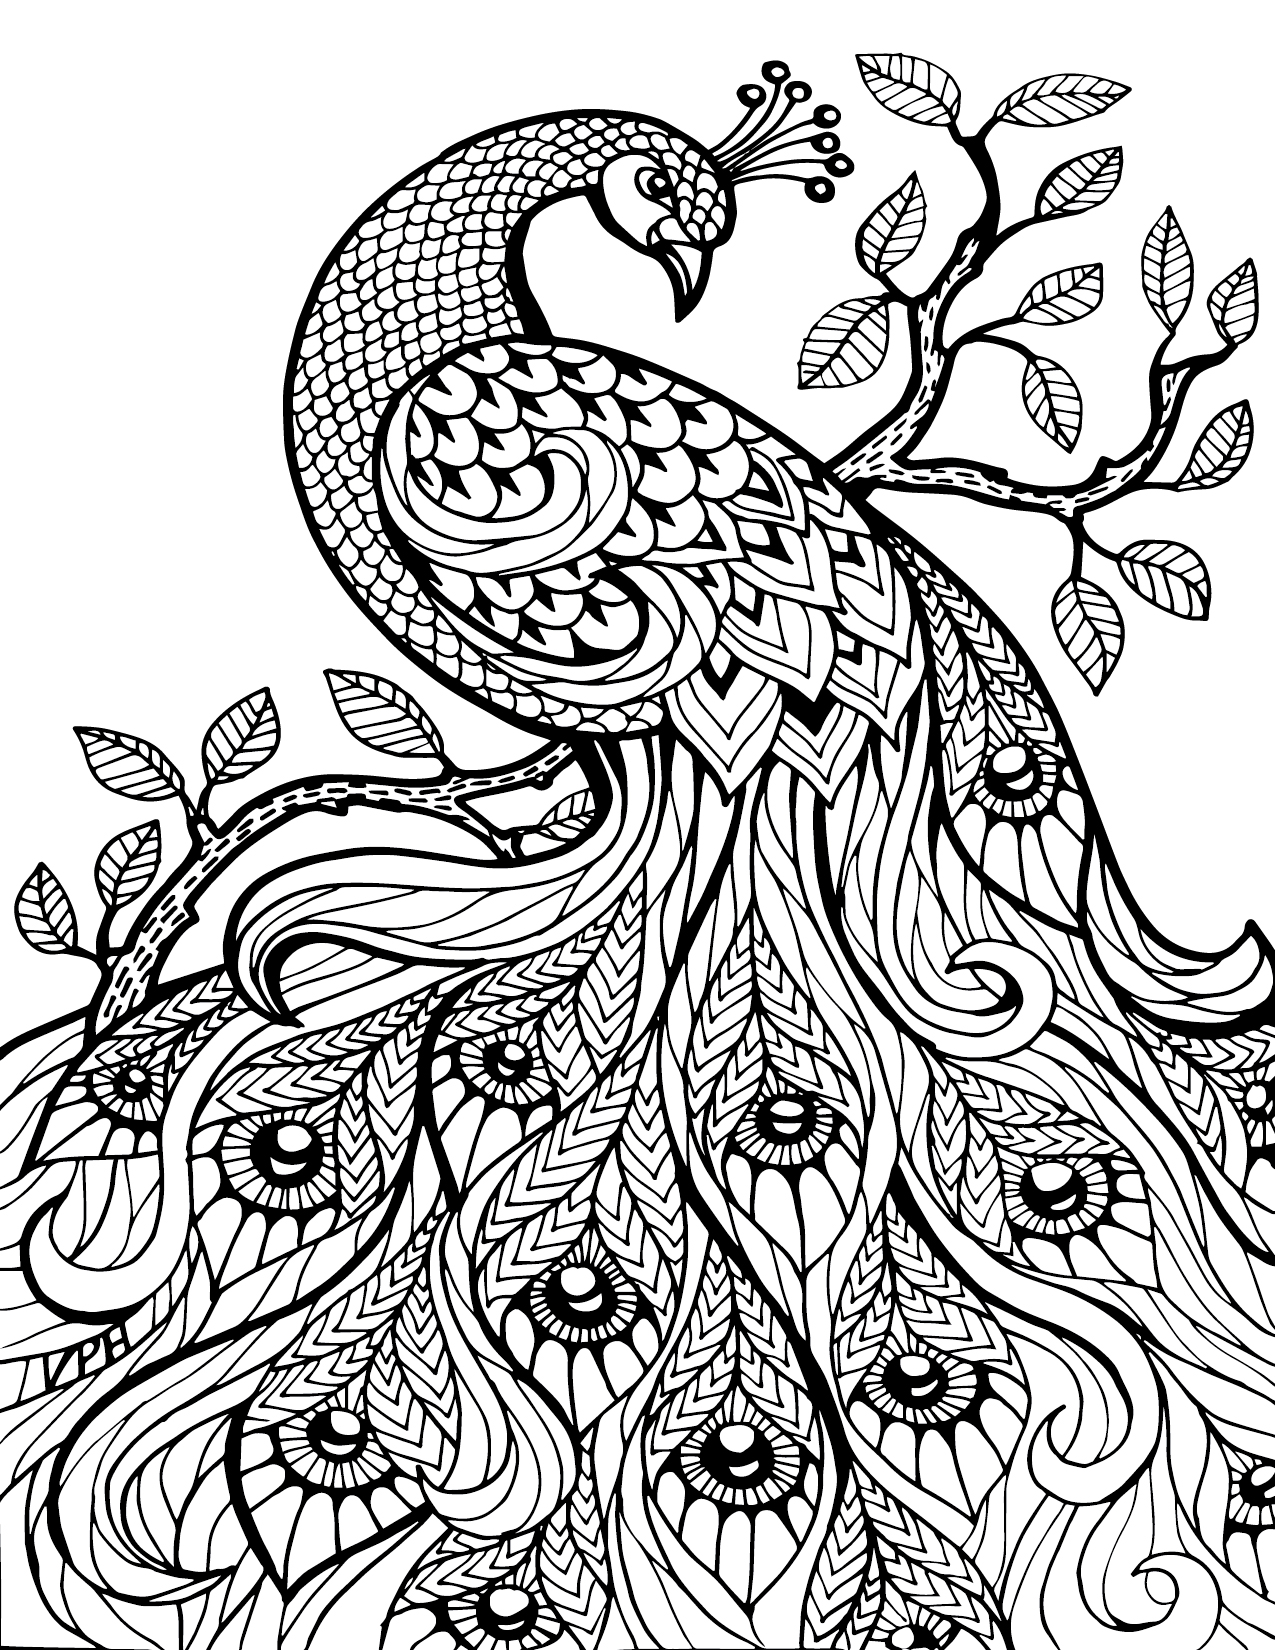 1275x1650 Sumptuous Design Coloring Pages Hard For Adults Best Kids